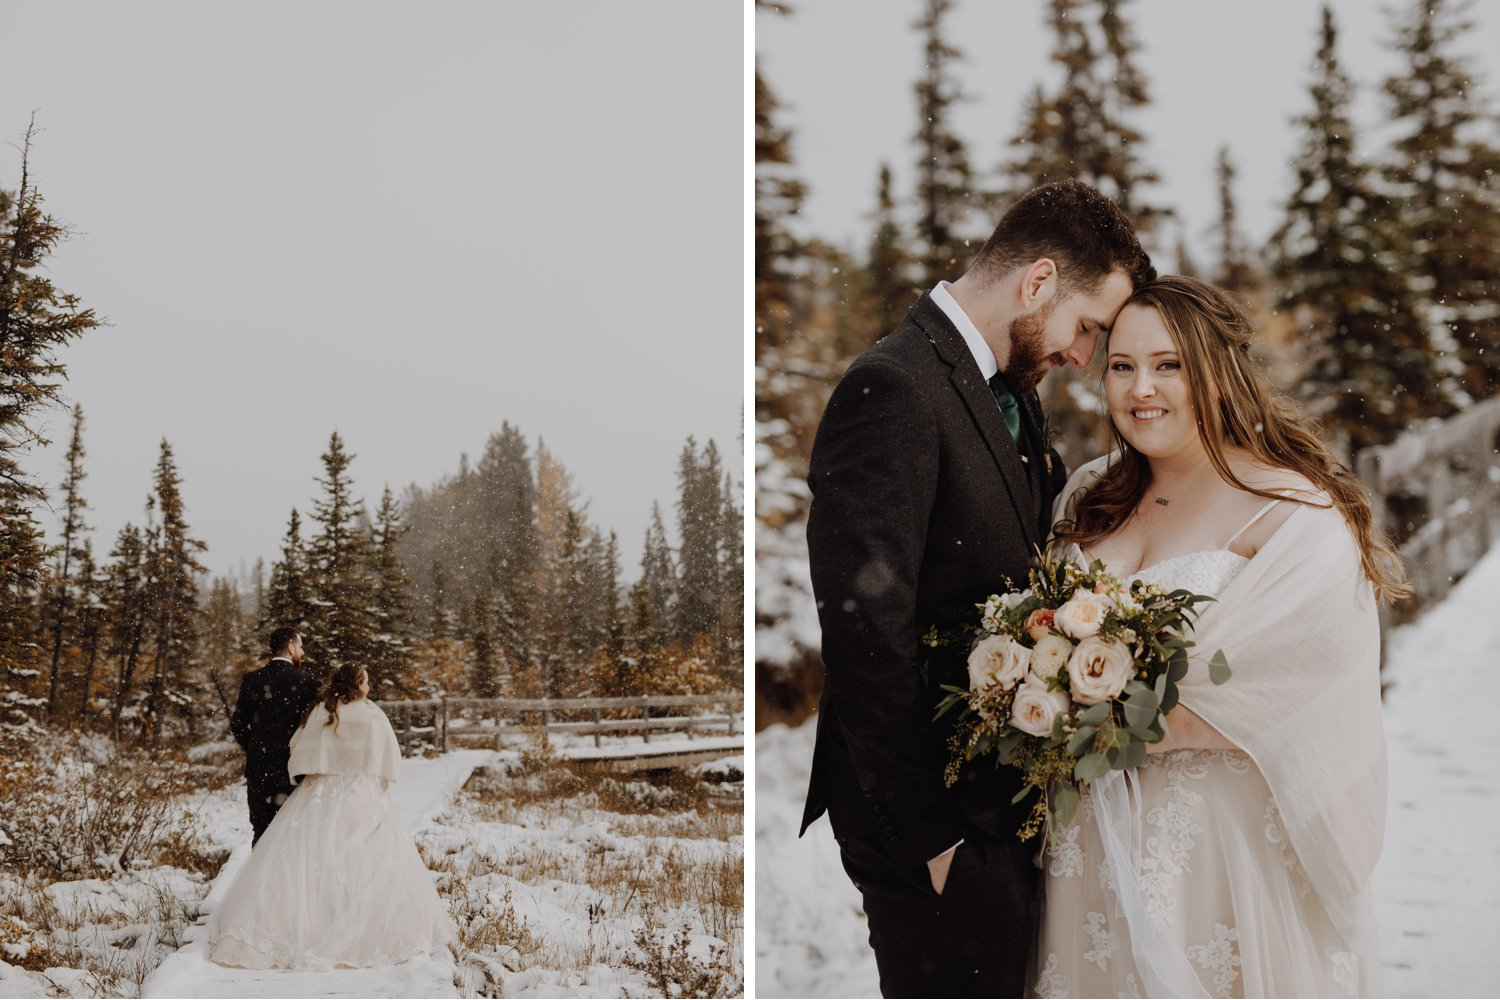 Banff Wedding - winter wonderland wedding